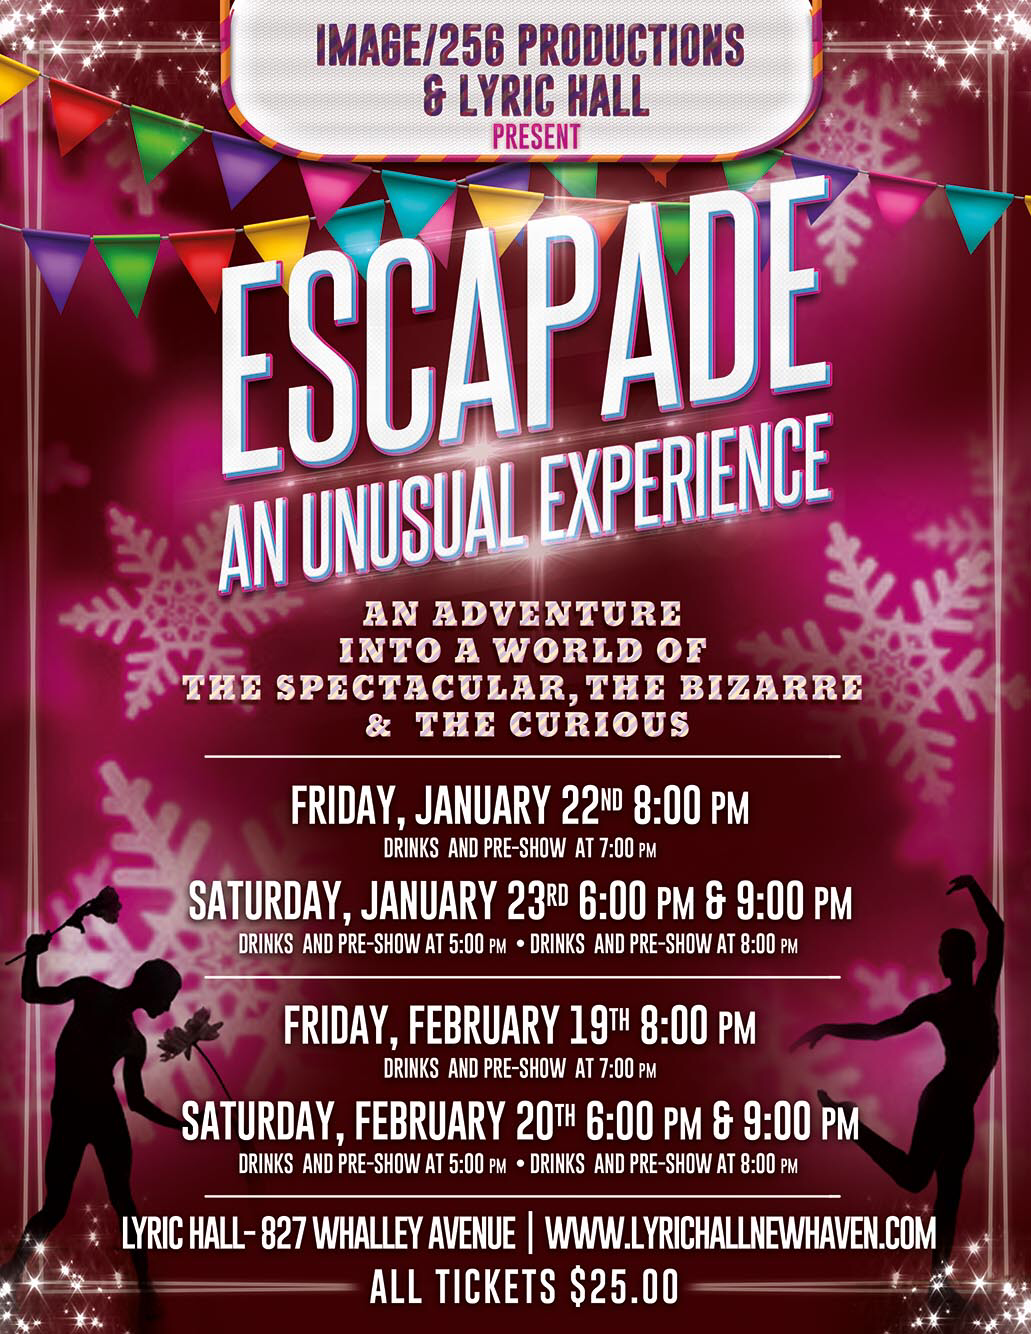 Escapade: An Unusual Experience